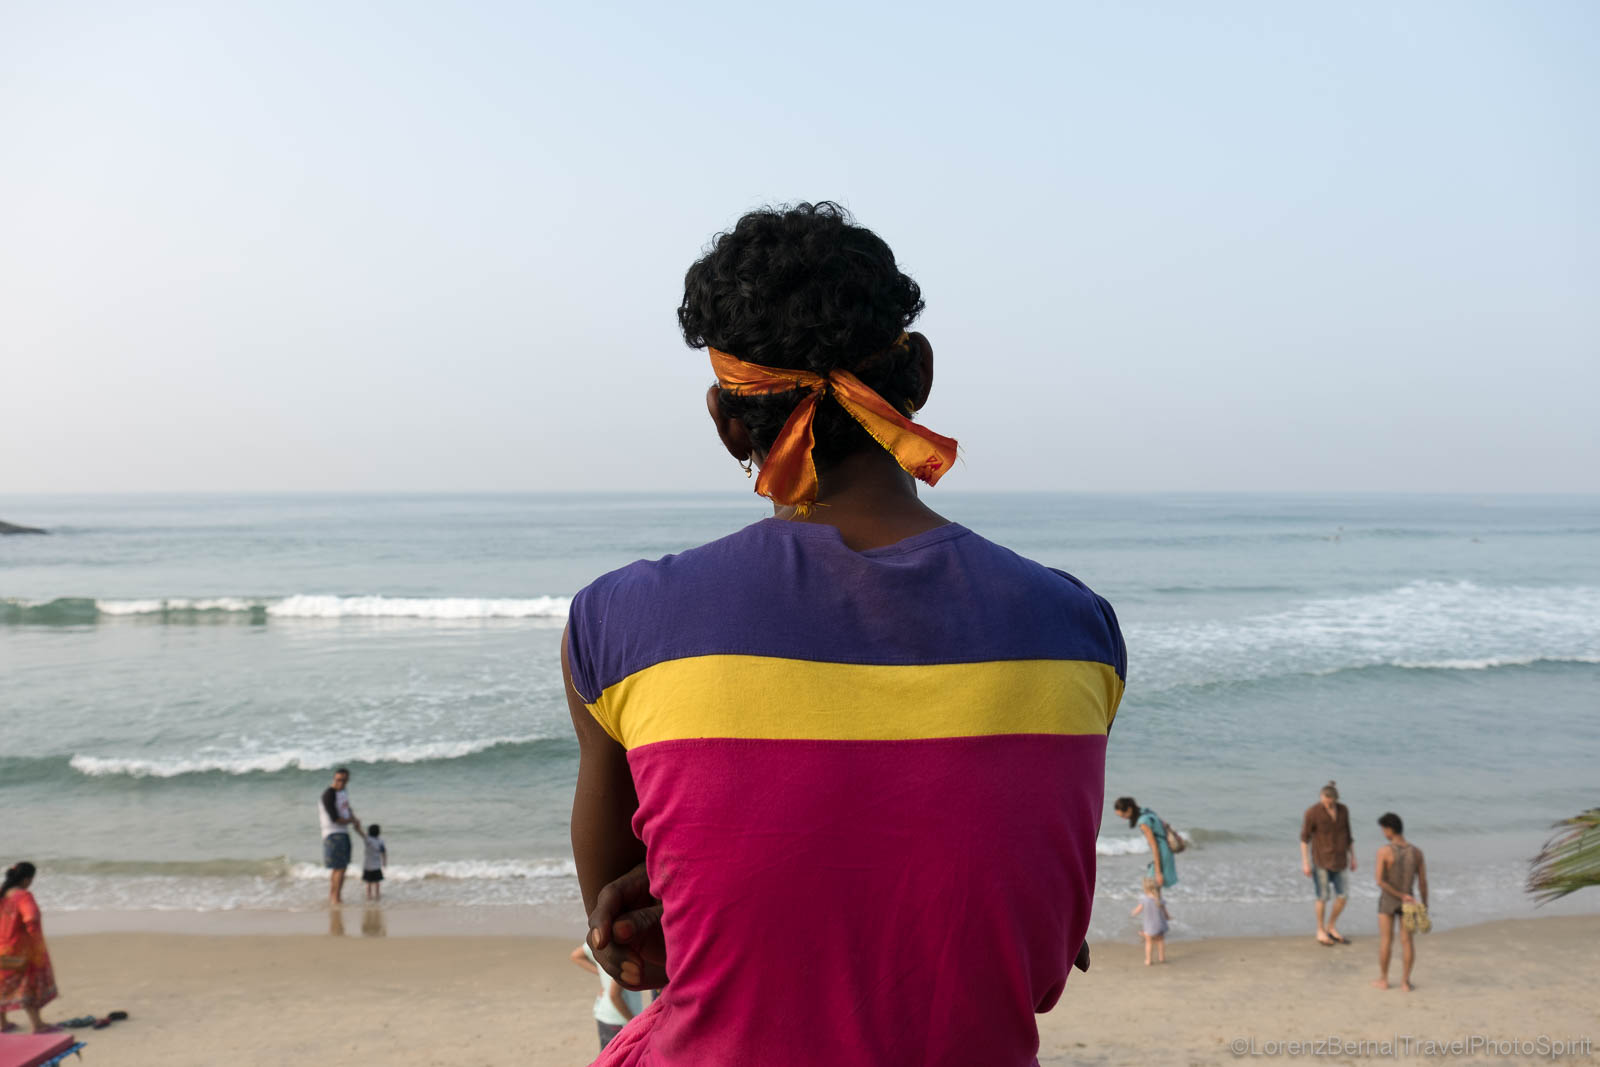 Local boy turning his back, looking at the sea in Kovalam beach, Kerala, India